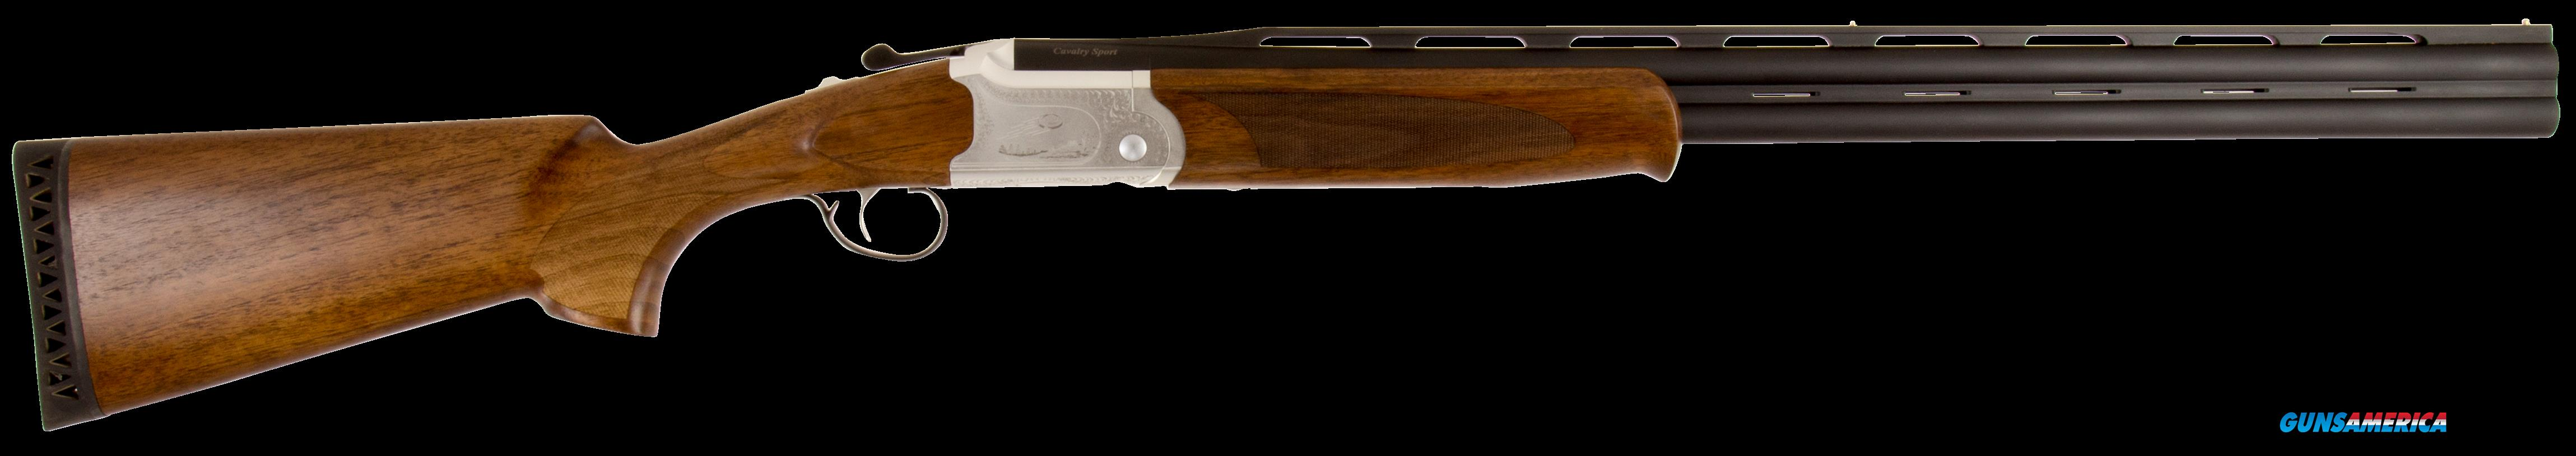 "ATI GKOF12SP Cavalry Over/Under 12 Gauge 28"" 3"" Turkish Walnut Stk Engraved Rcvr  Guns > Shotguns > American Tactical Import"